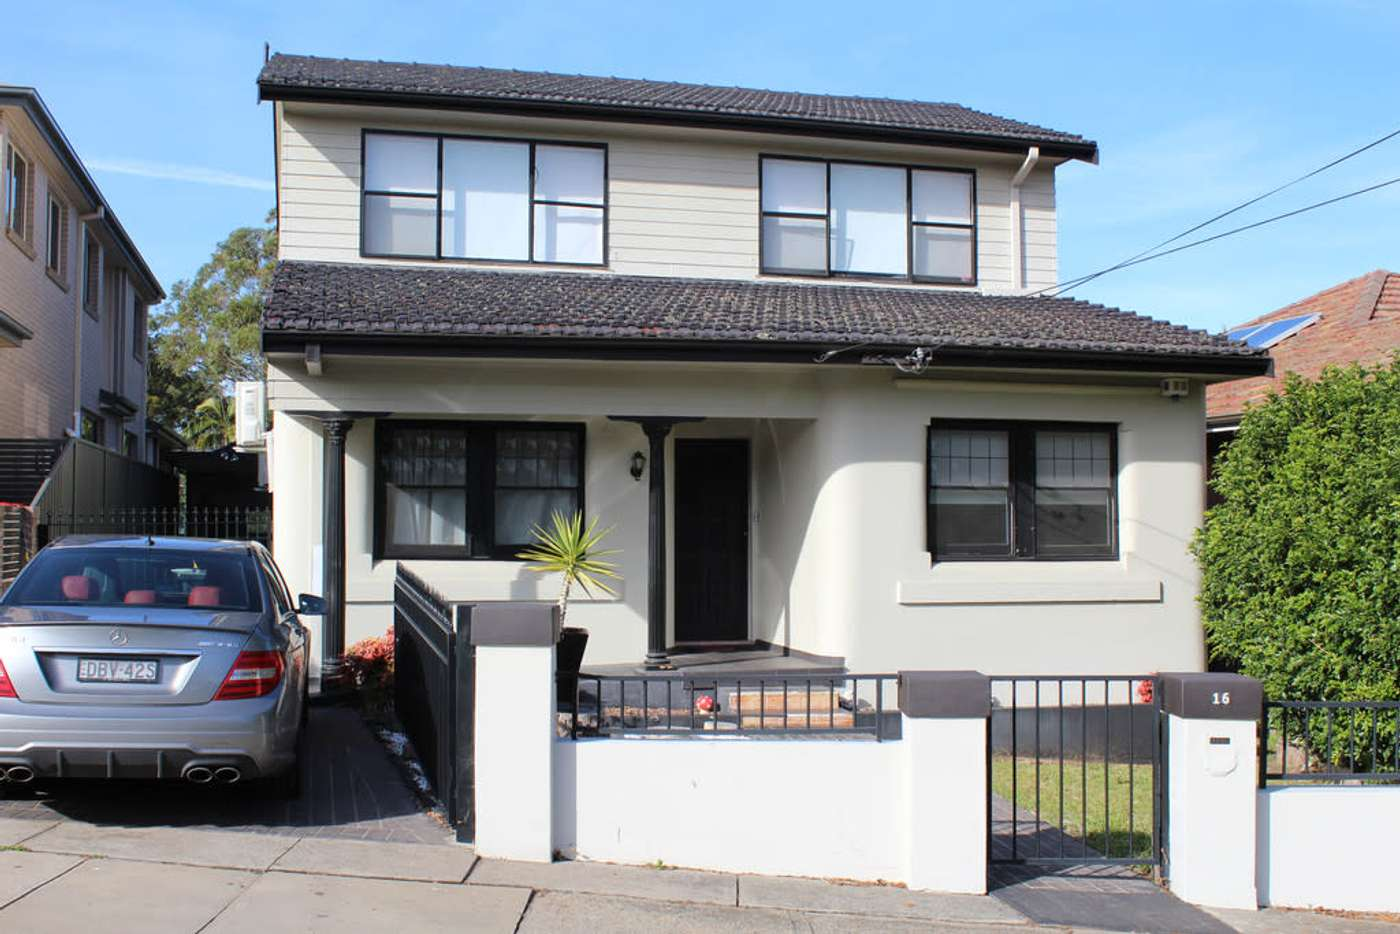 Main view of Homely house listing, 16 MOORE ST, Bardwell Park NSW 2207